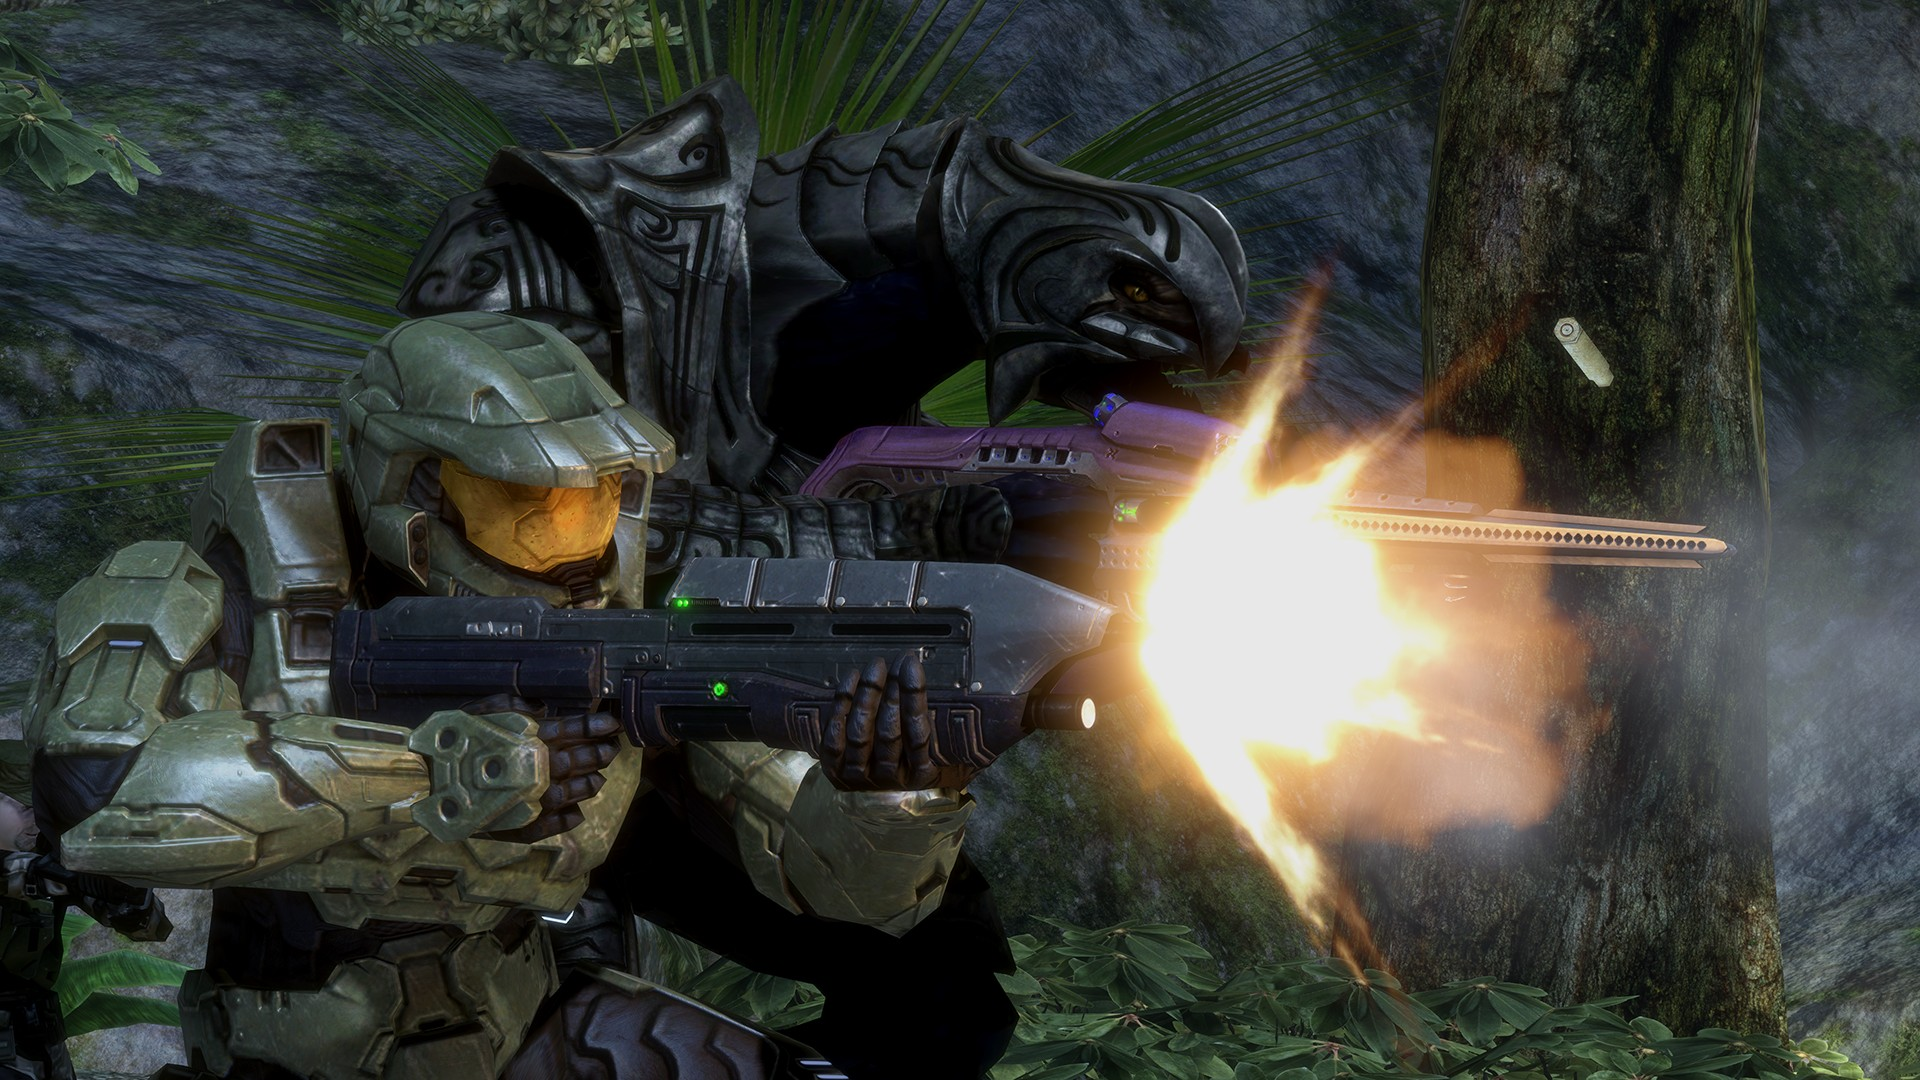 Video For Finish the Fight in Halo 3 Now Available for PC with The Master Chief Collection